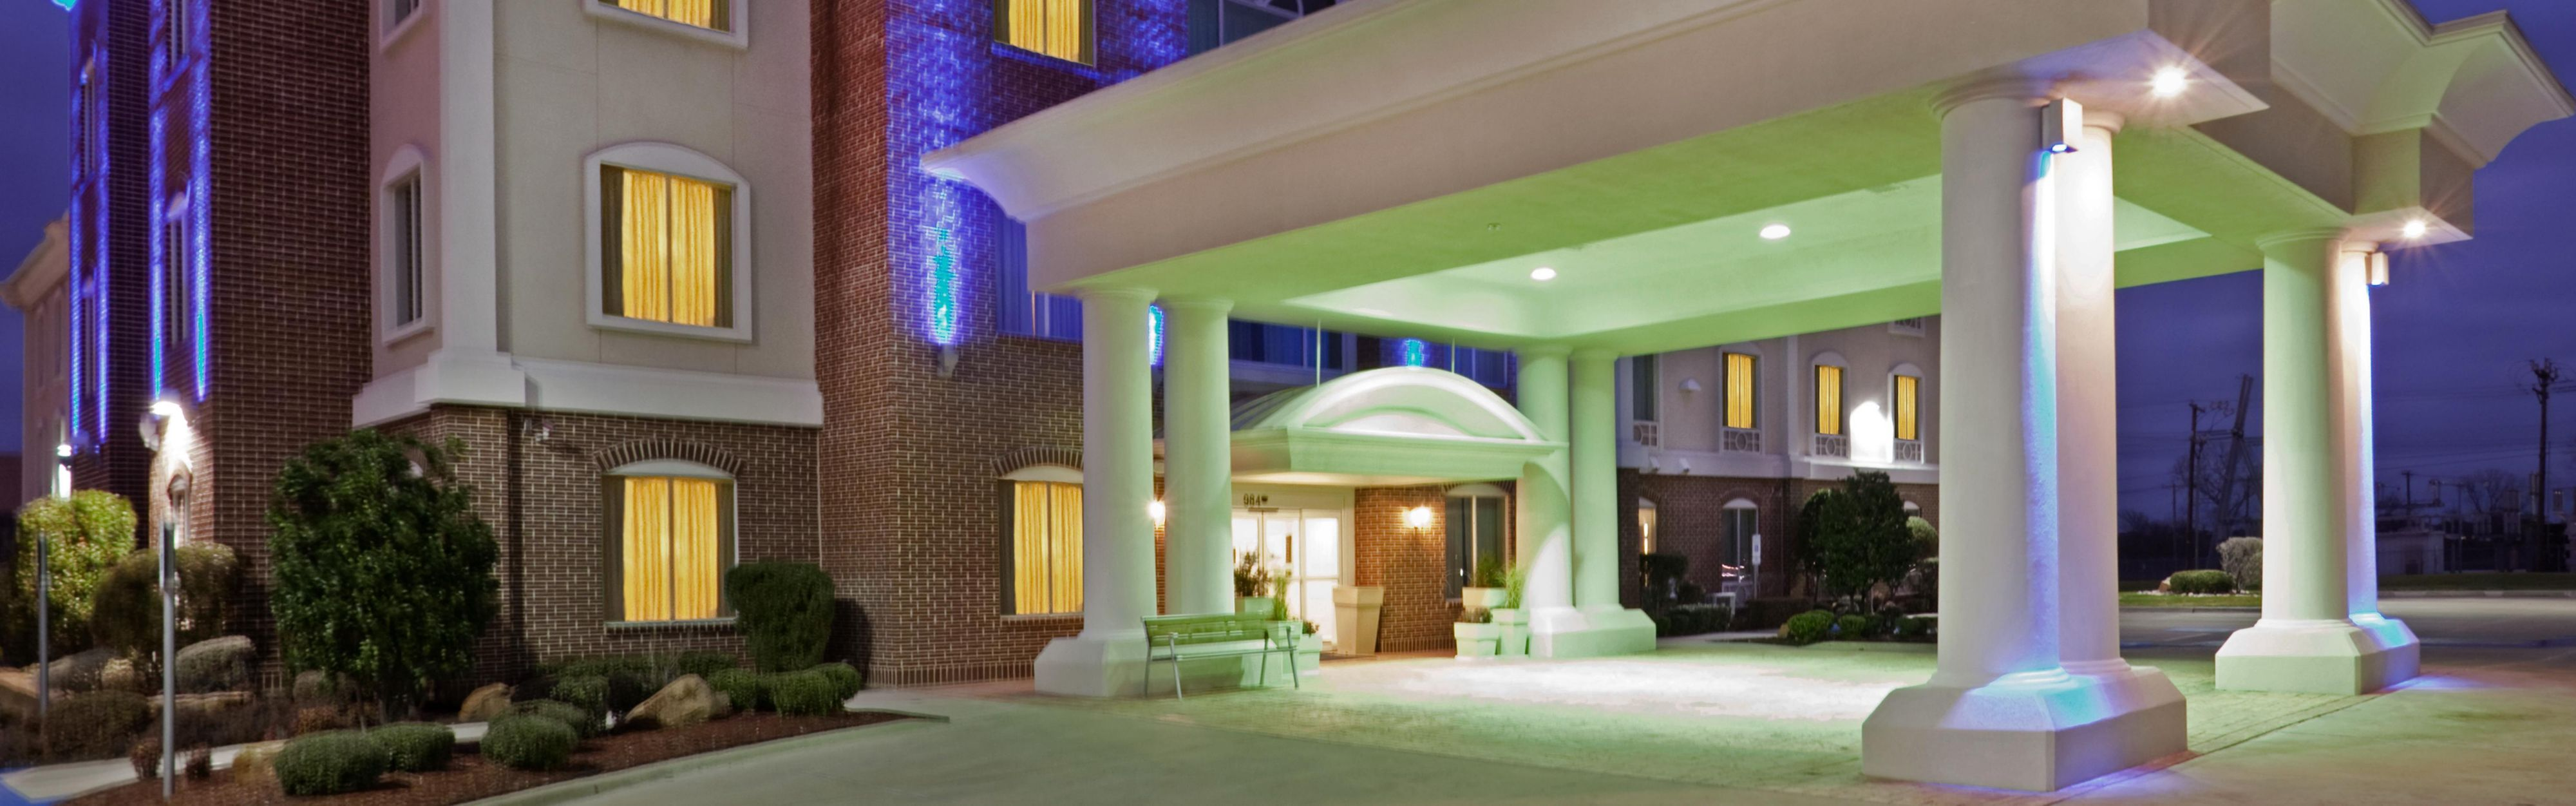 Holiday Inn Express & Suites Waxahachie image 0